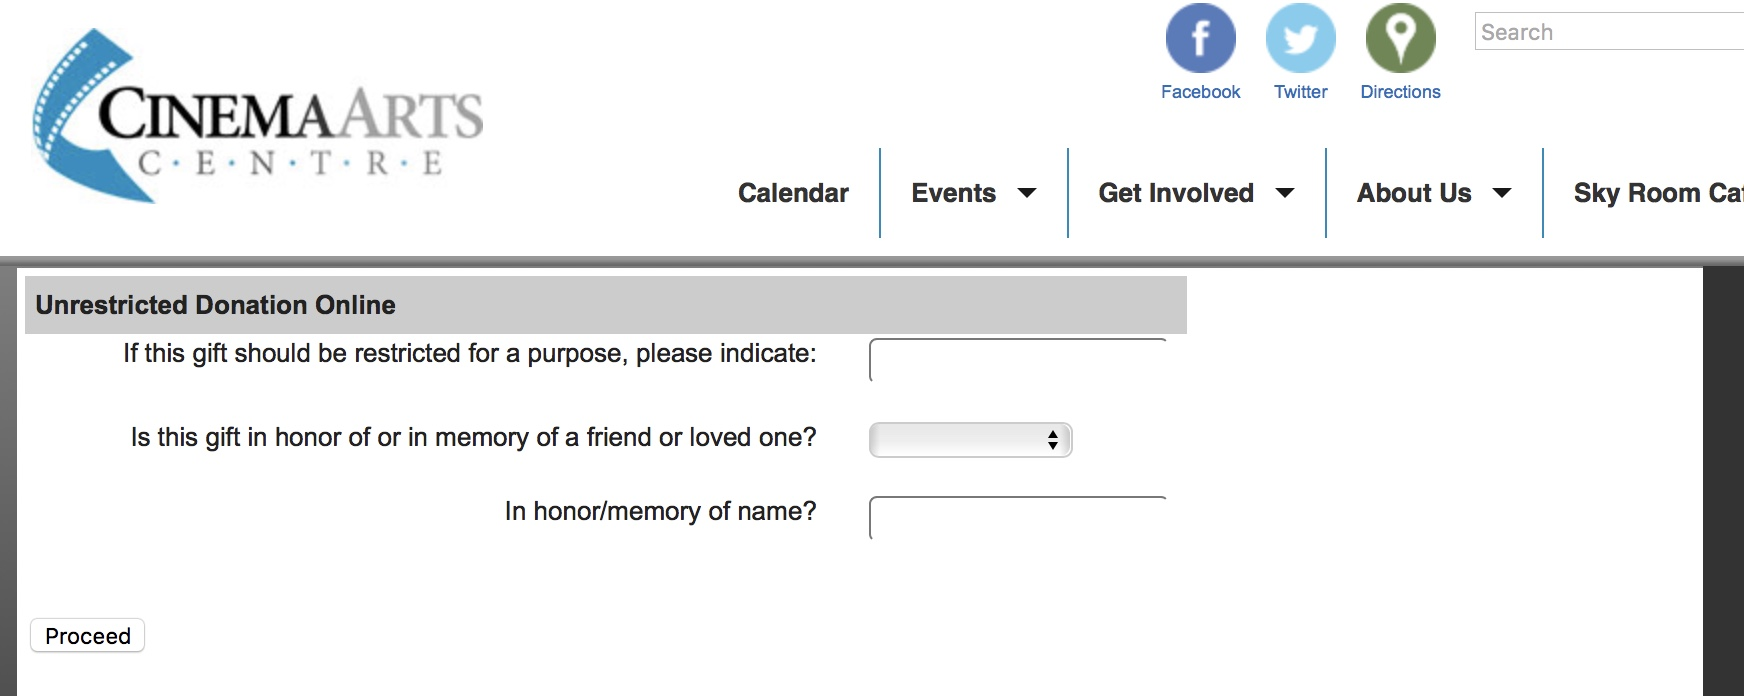 Our testing shows that some users find this donation sequence frustrating. - As one user said upon seeing this screen,